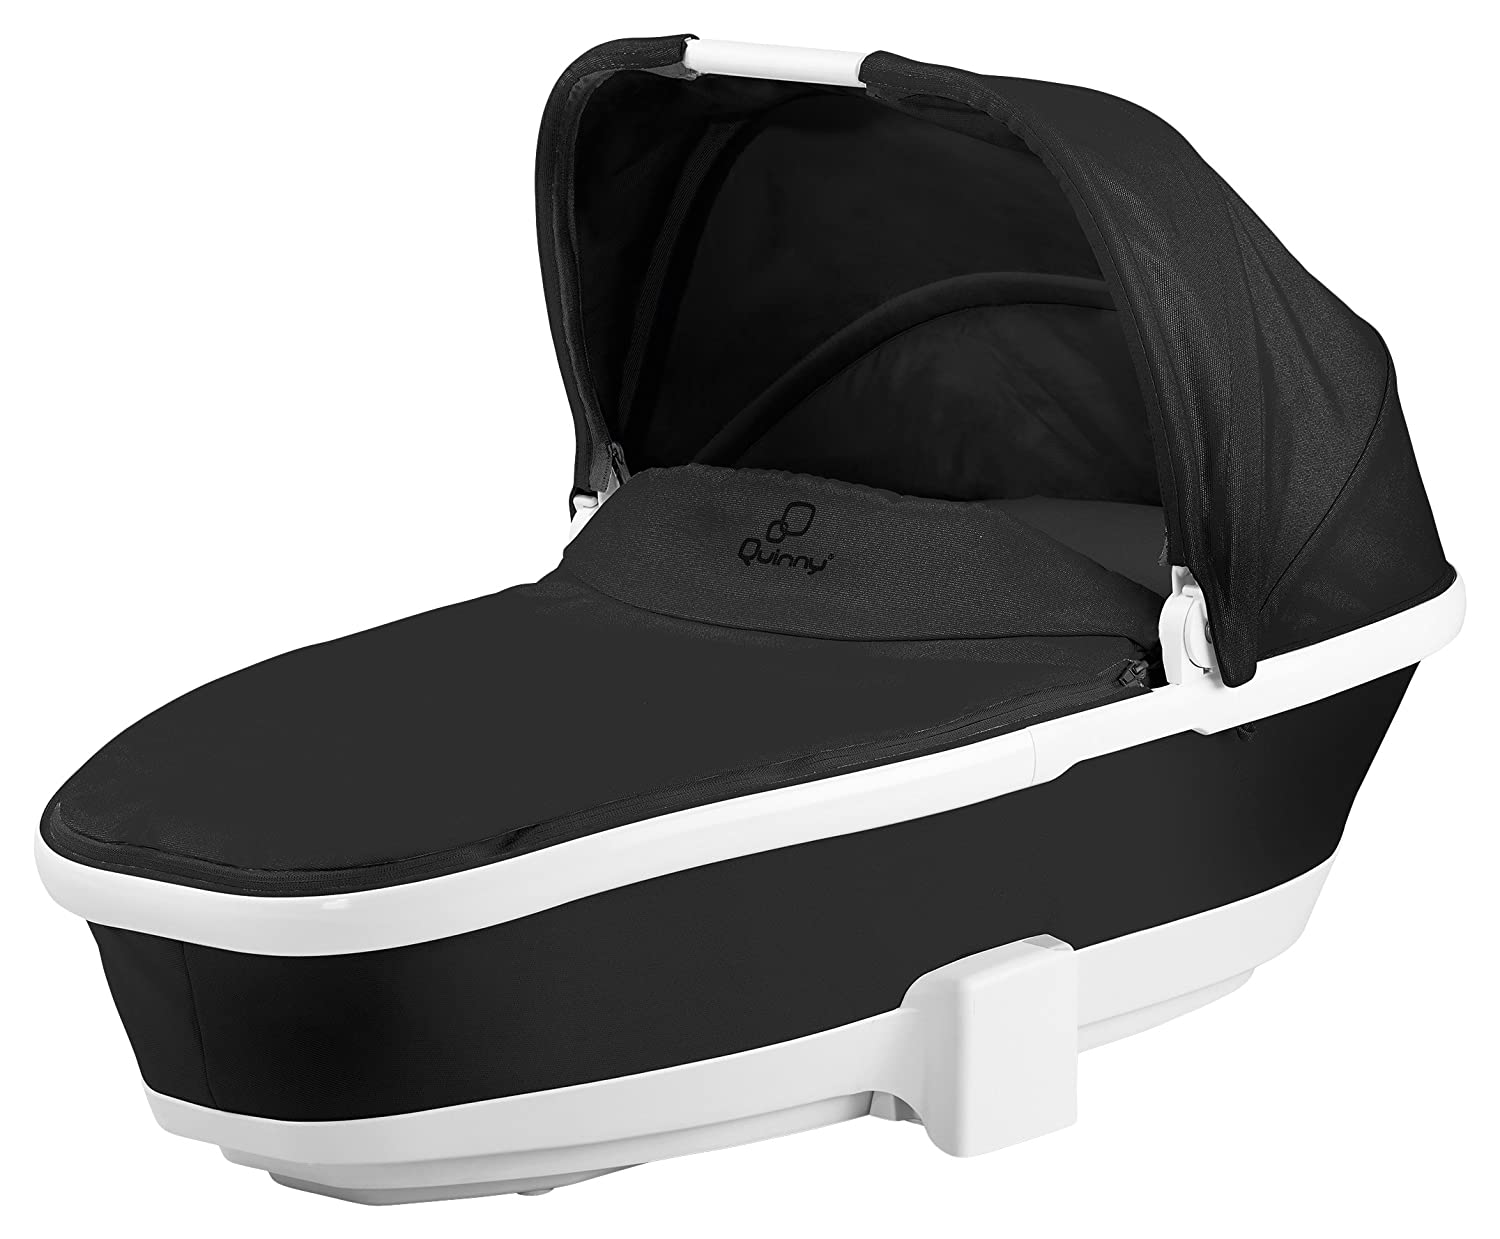 Quinny Foldable Black Carrycot Novel Nile